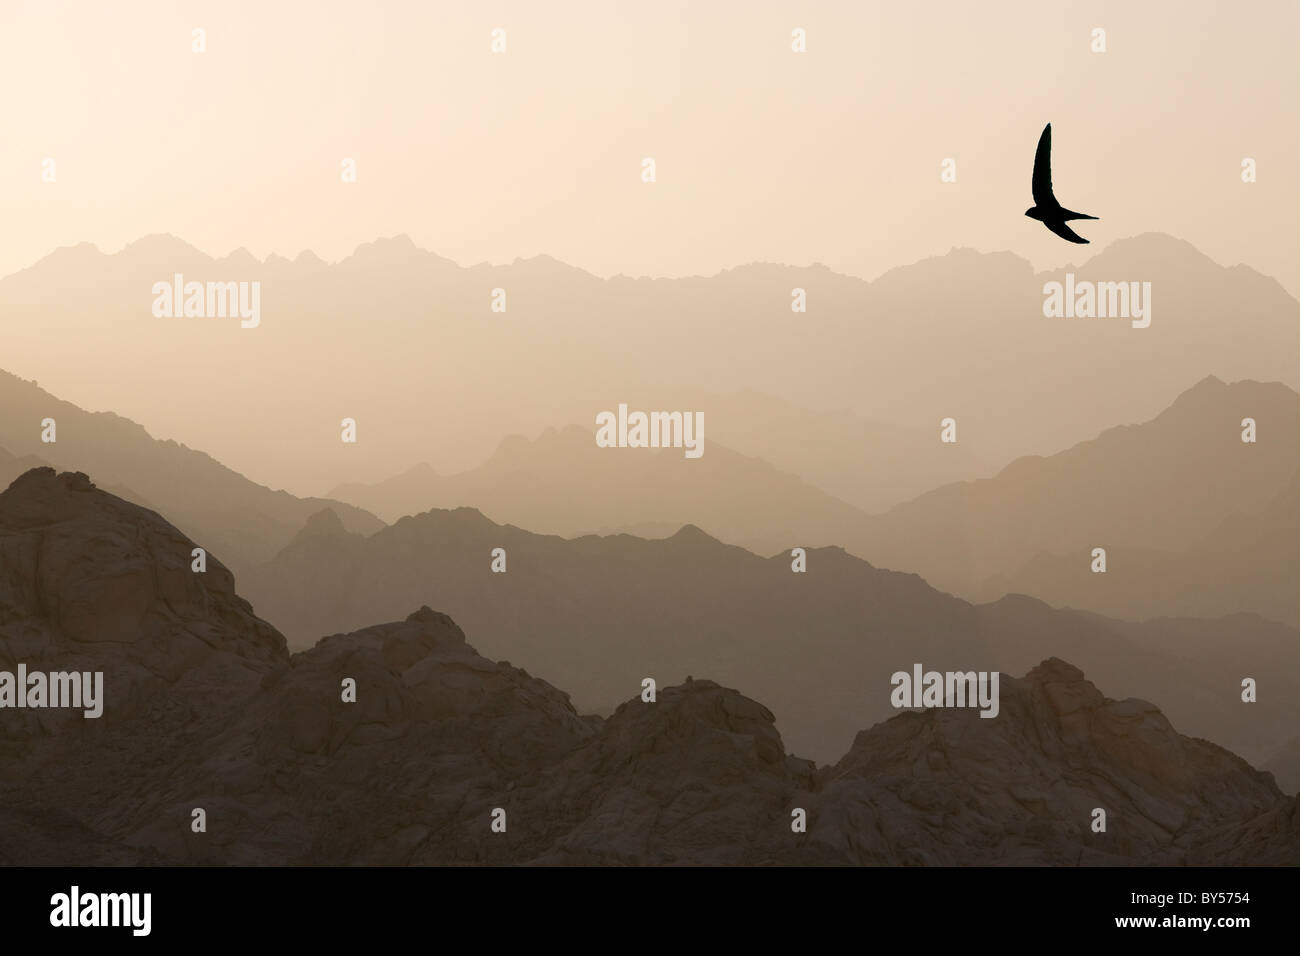 the mountains of the Sinai desert near Dahab in Egypt. - Stock Image